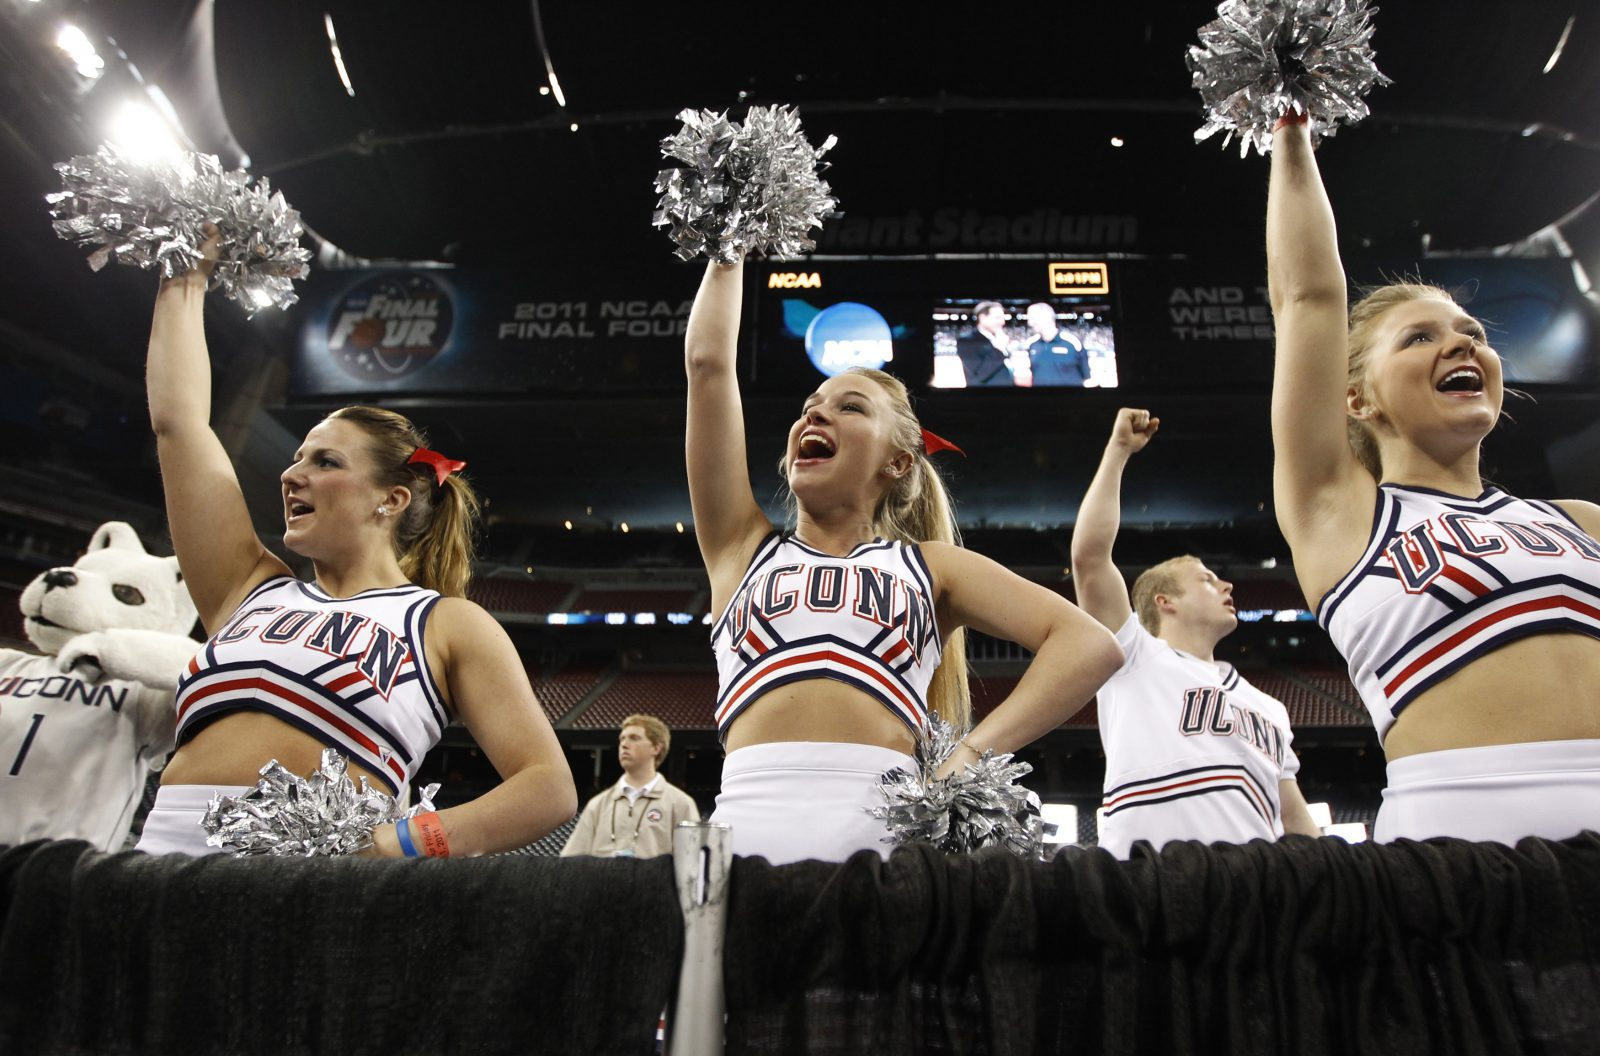 Iconic American cheerleading uniform designs are protected by copyright law, the Supreme Court has ruled